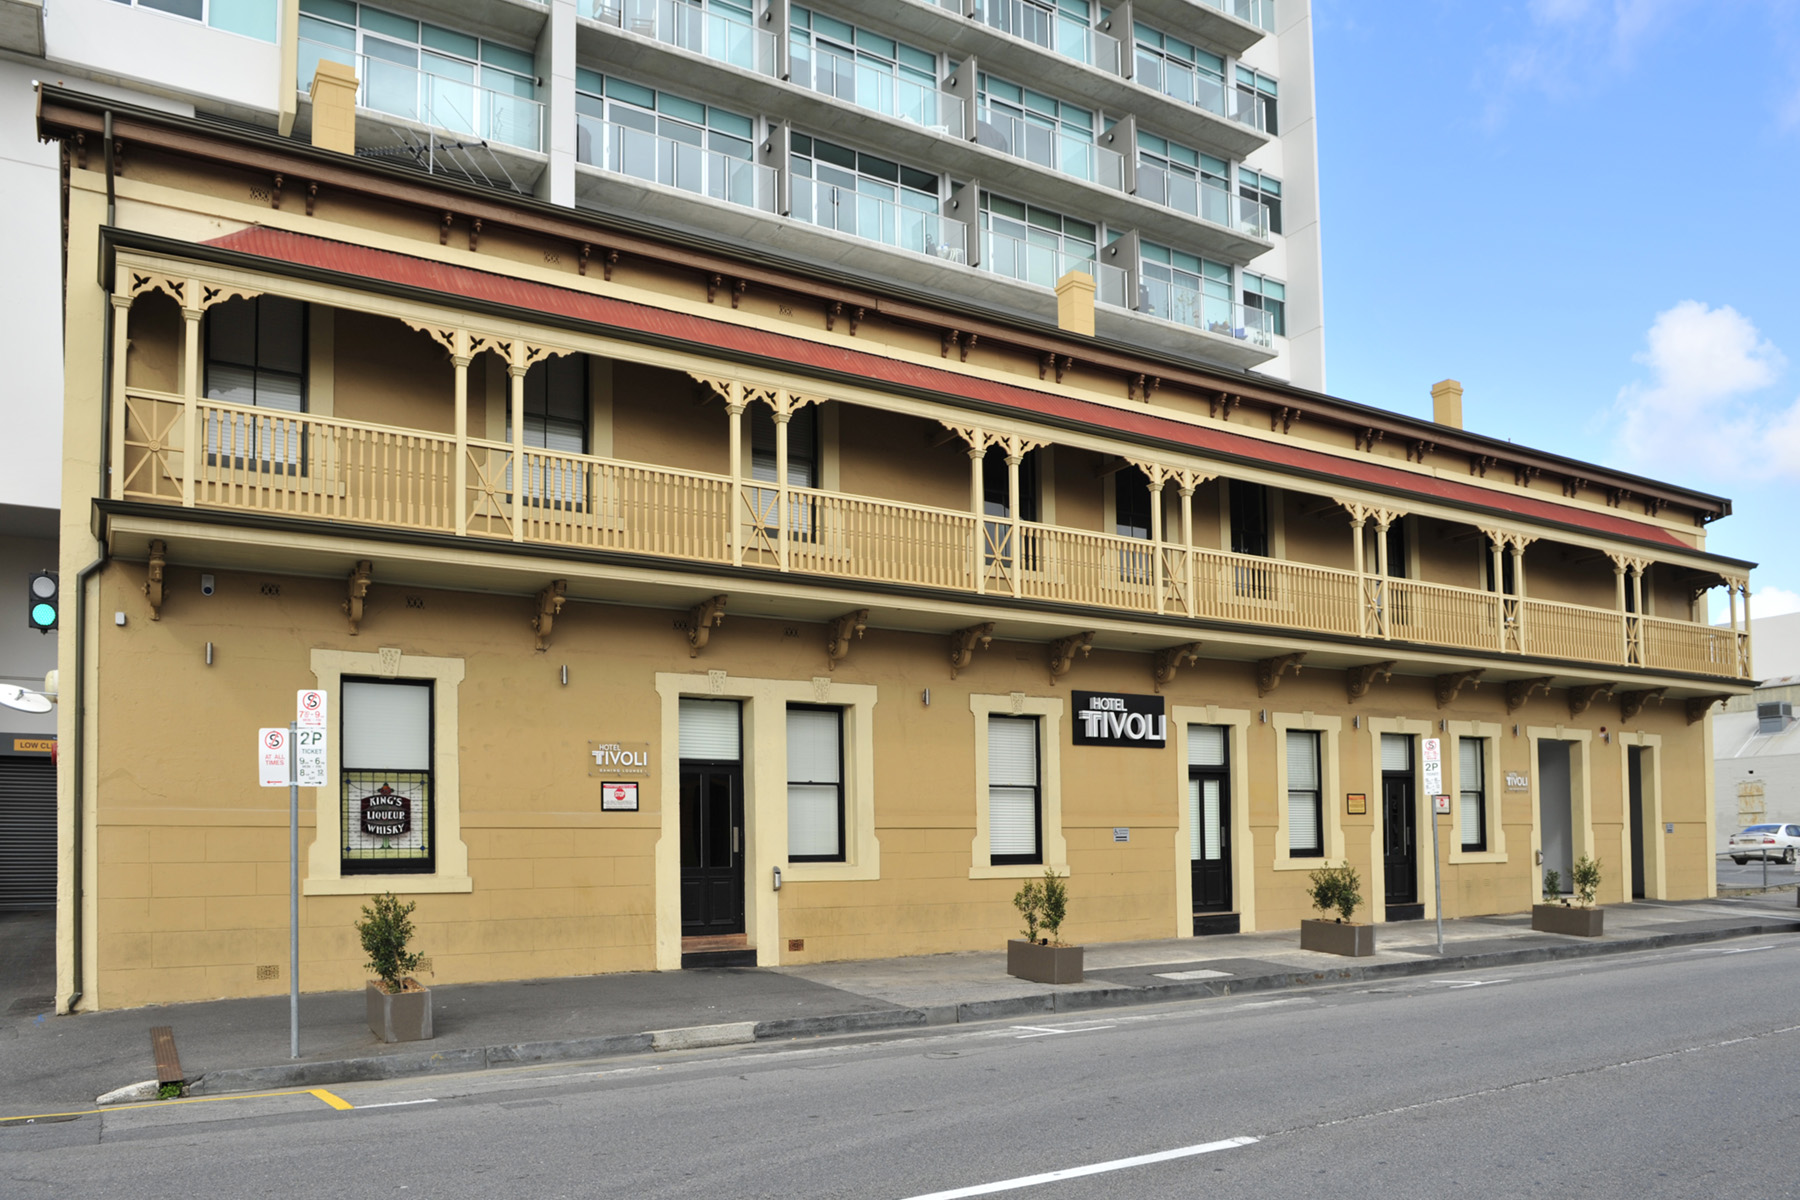 Hotel Tivoli - Accommodation in Bendigo